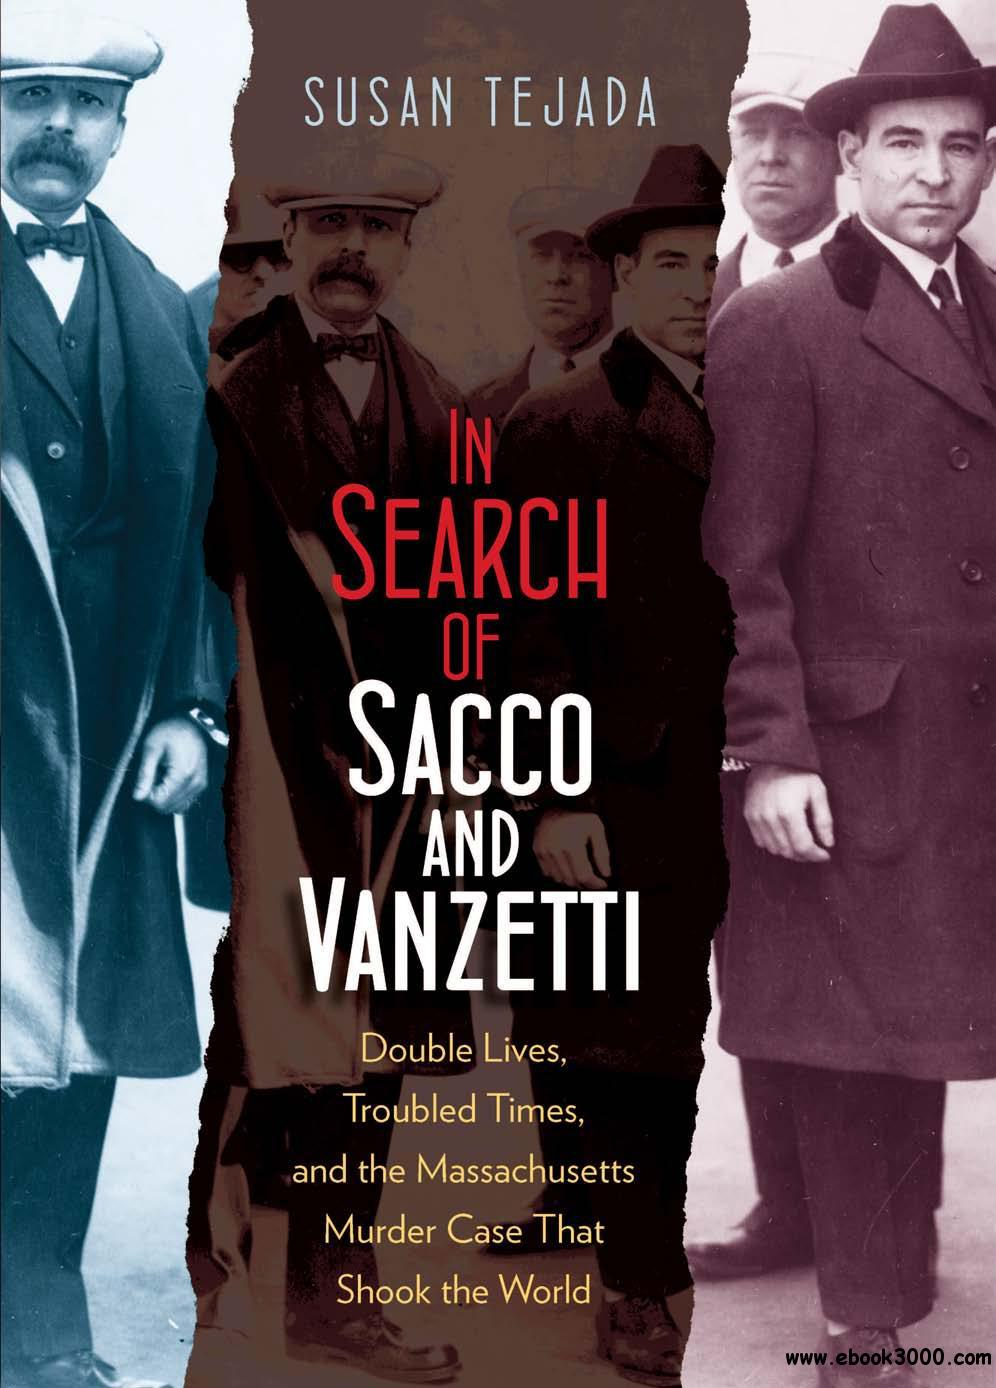 In Search of Sacco and Vanzetti: Double Lives, Troubled Times, and the Massachusetts Murder Case That Shook the World free download